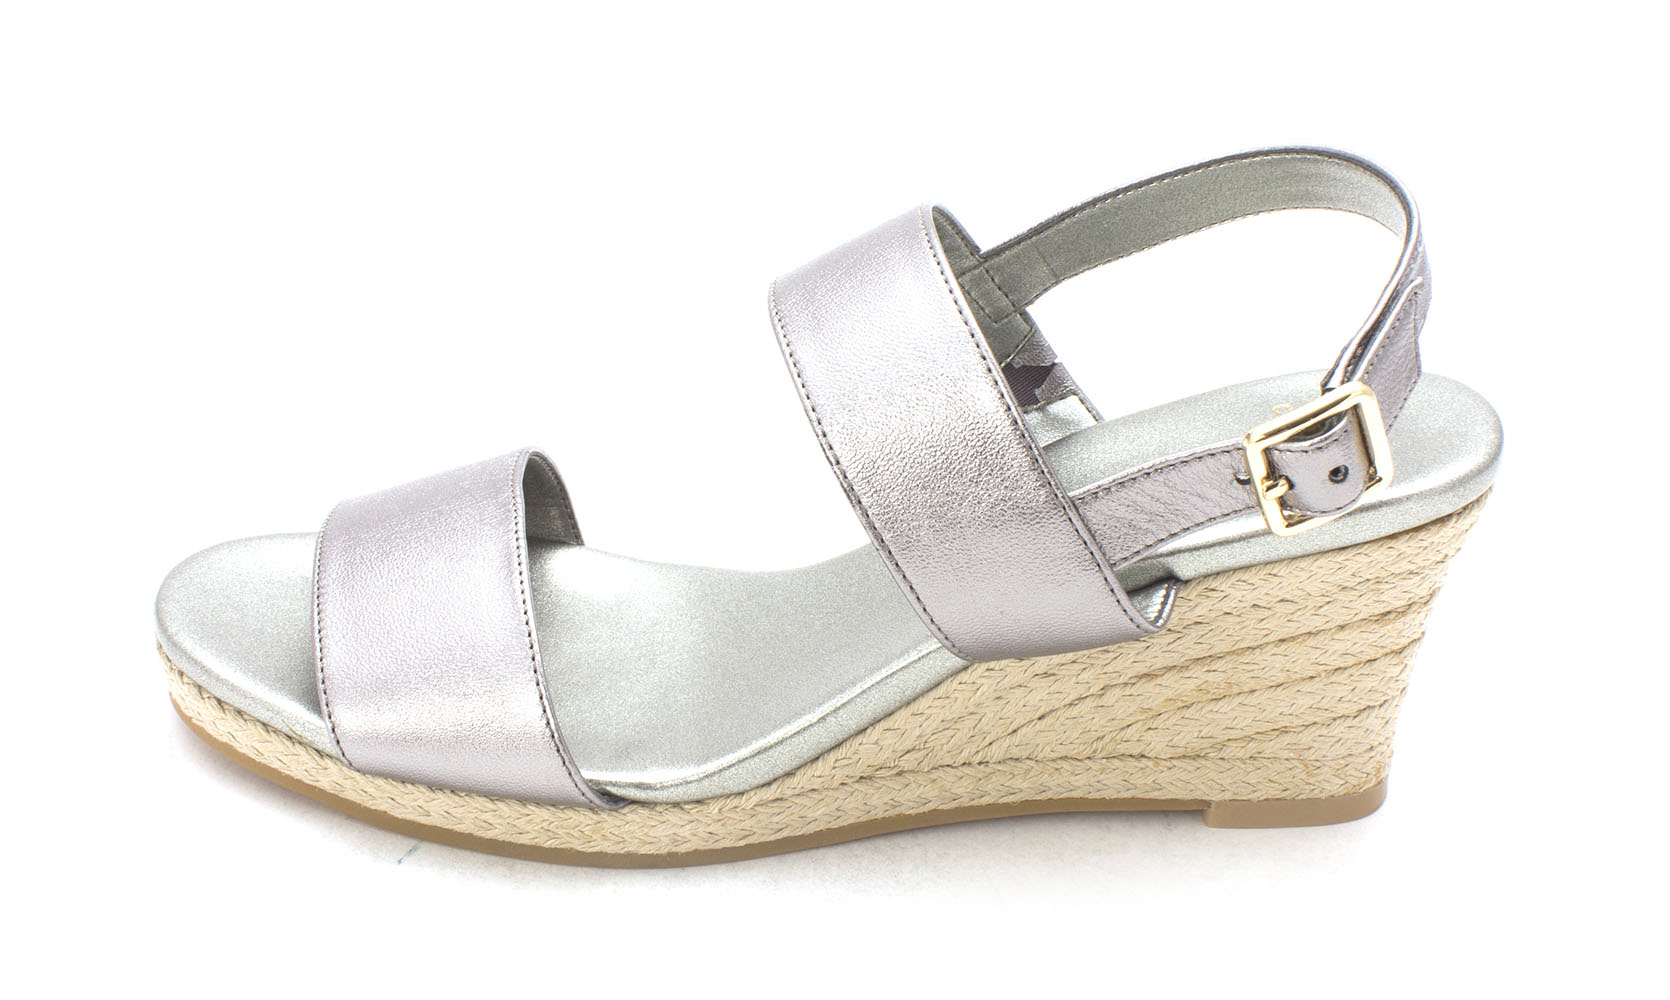 Cole Haan Womens Aleahsam Open Toe Casual Espadrille Sandals Gunmetal Size 60